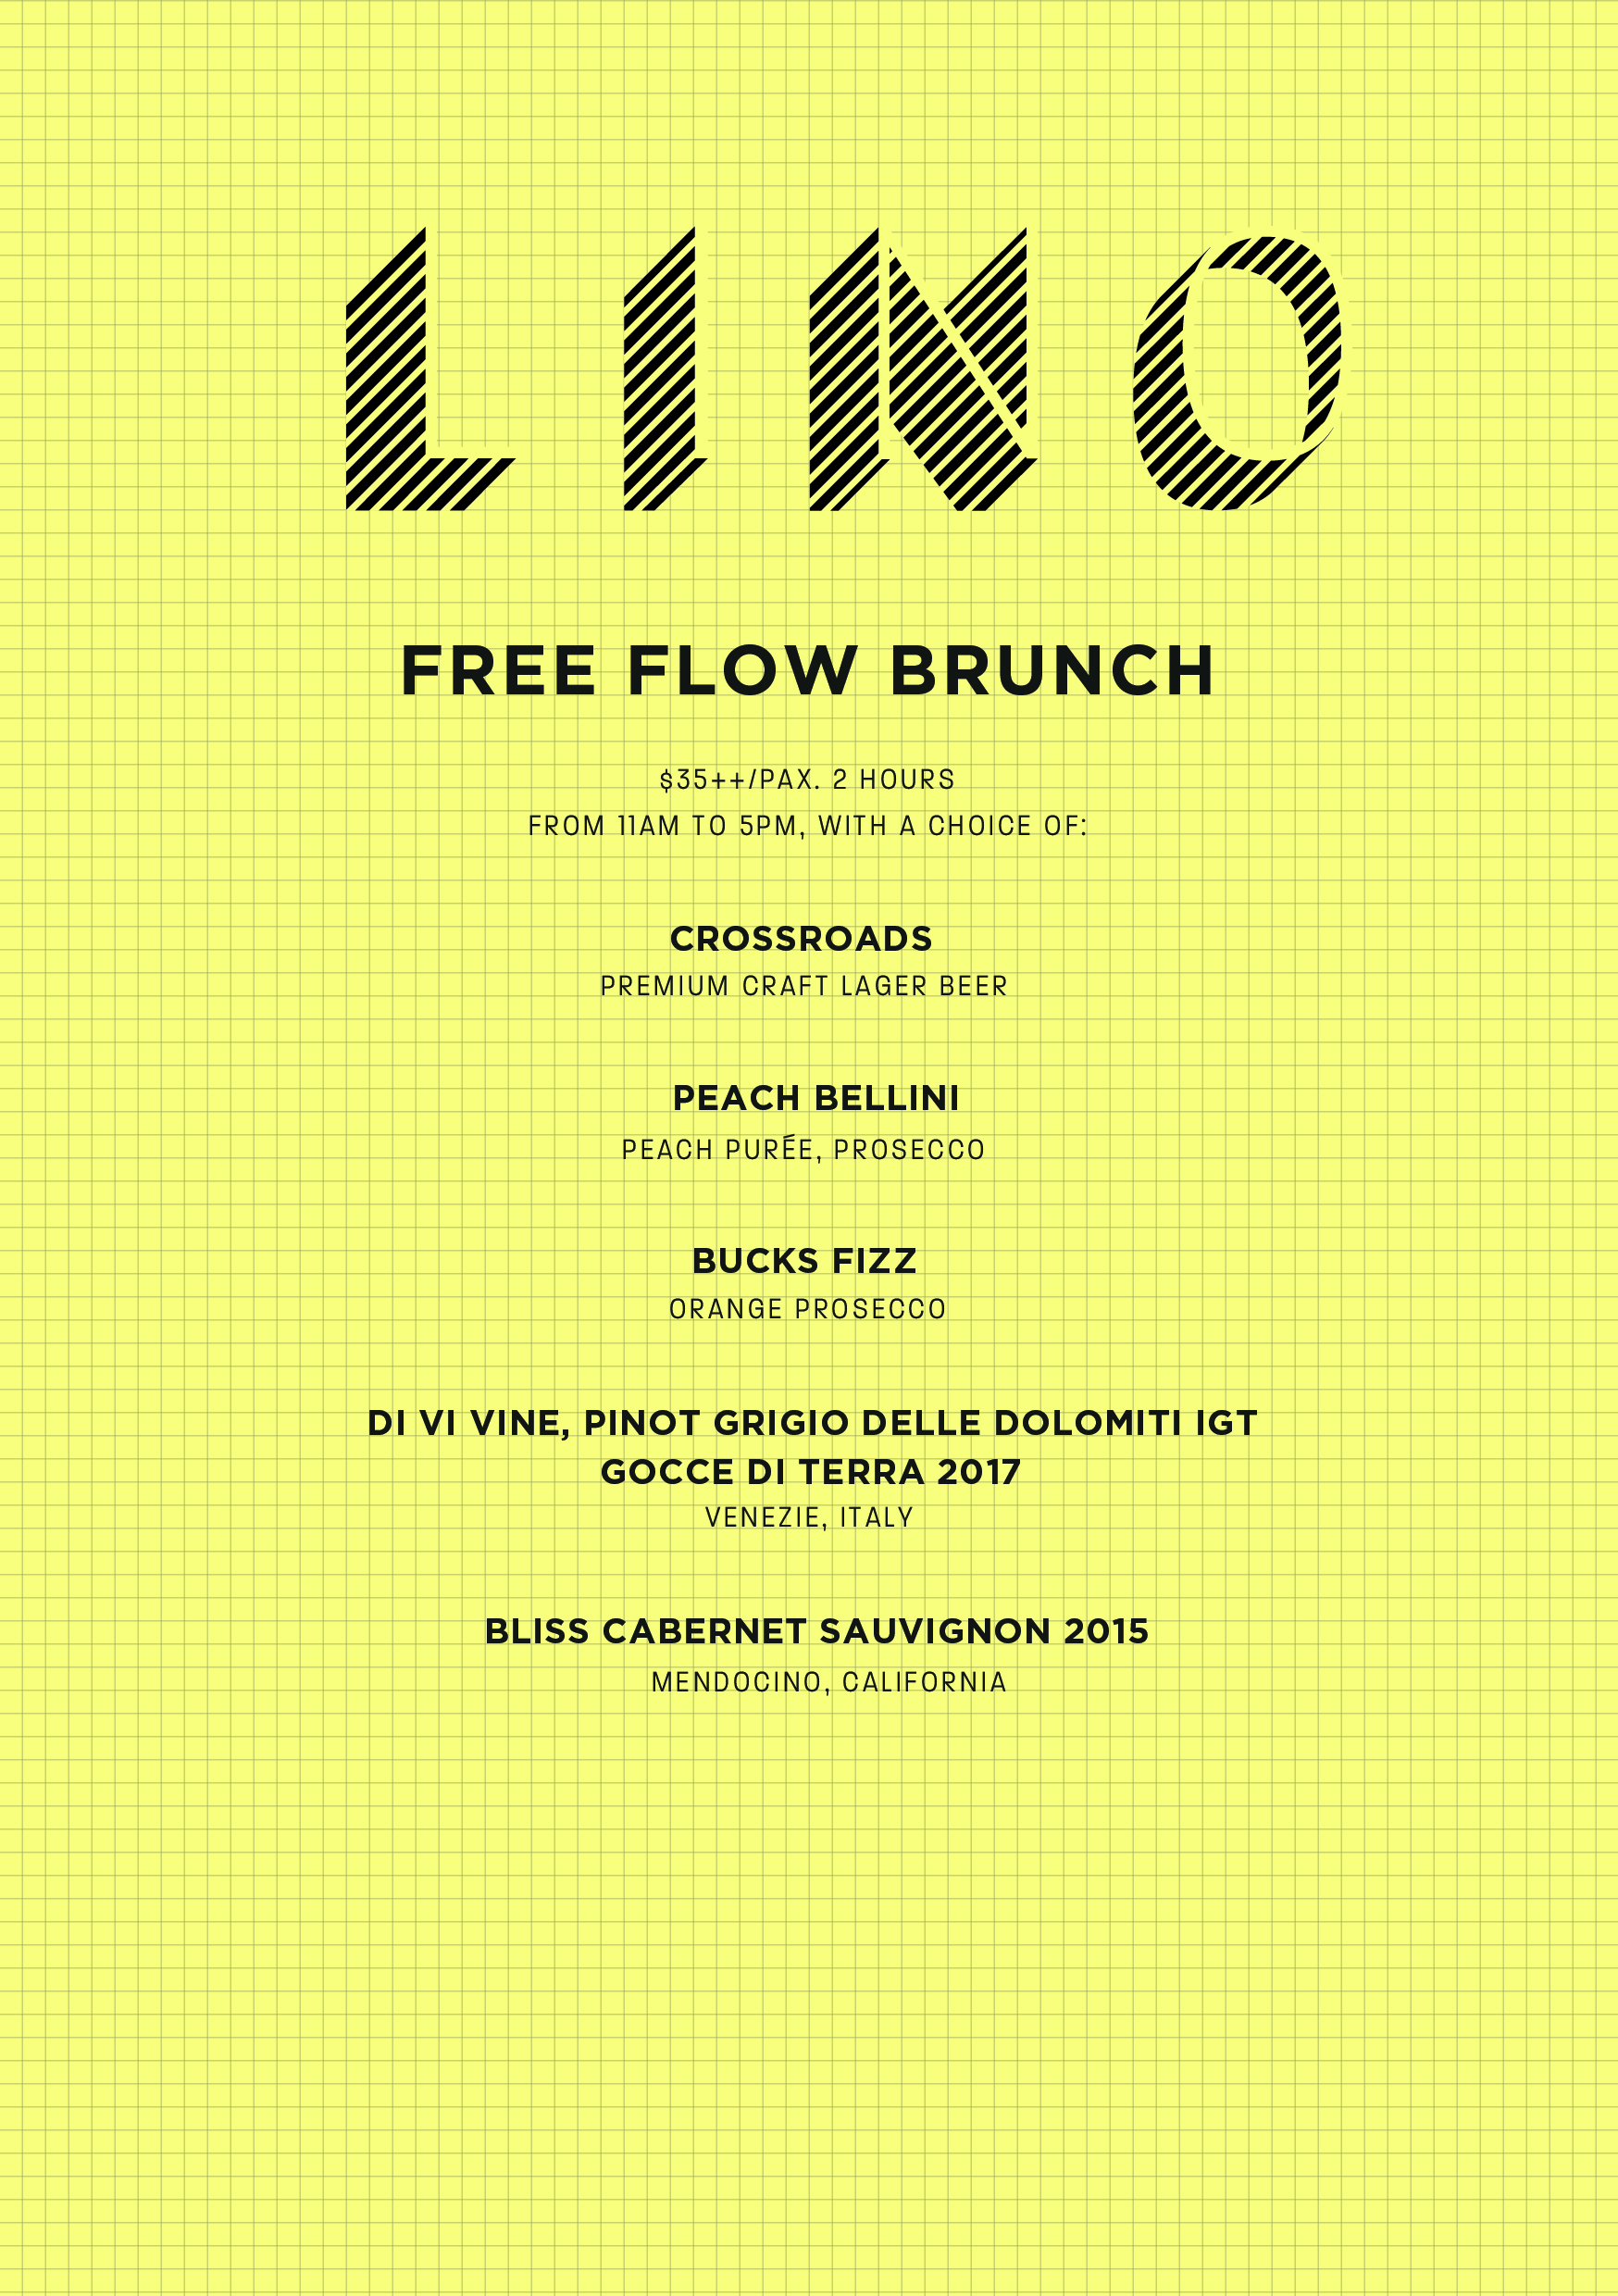 LINO Brunch Menu (Latest).jpg